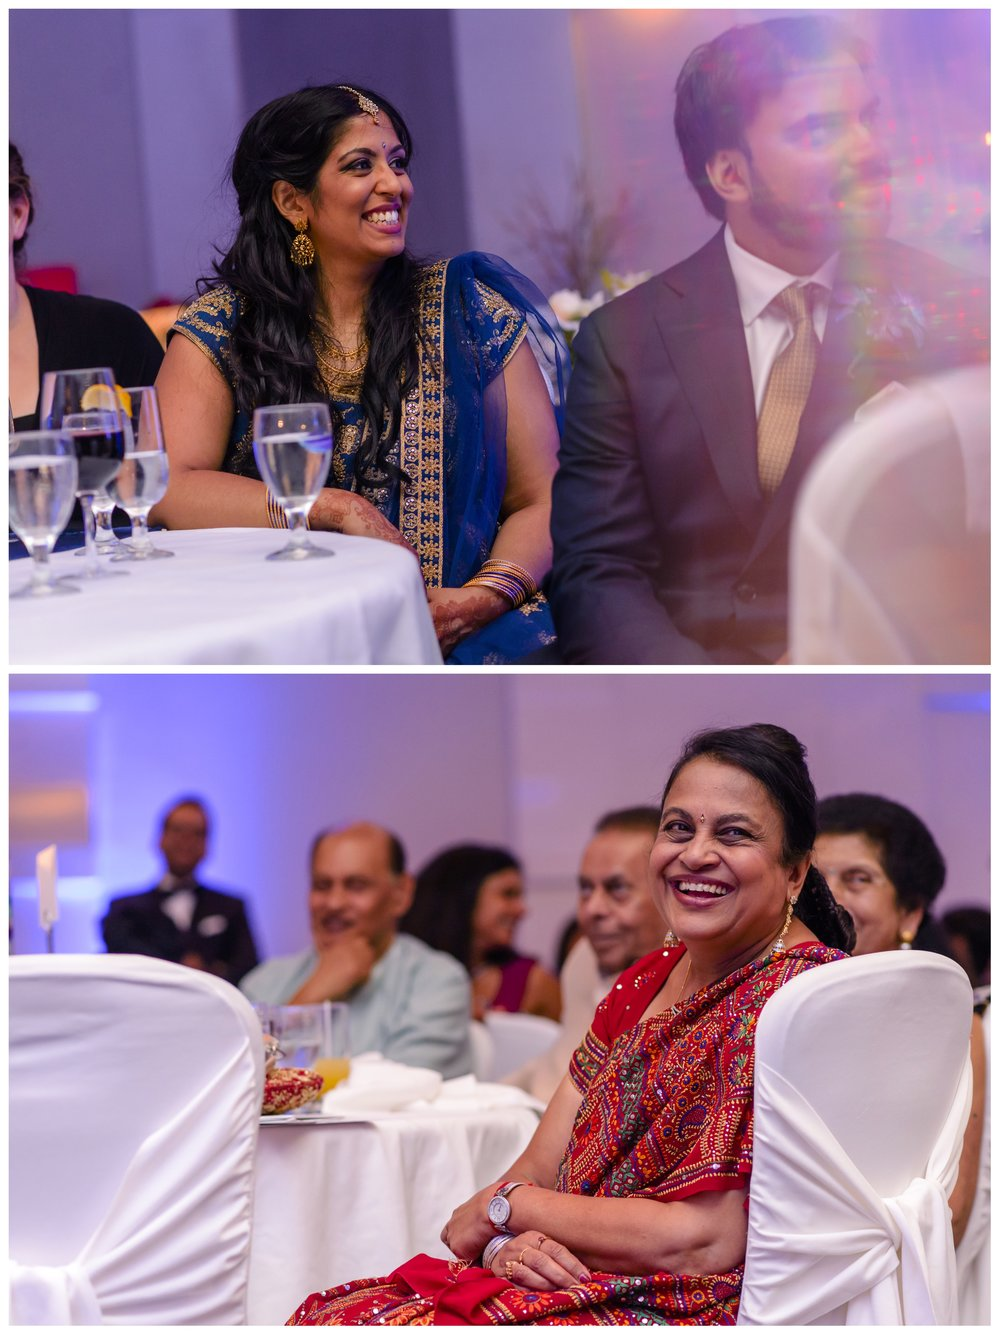 Indian wedding reception photographs